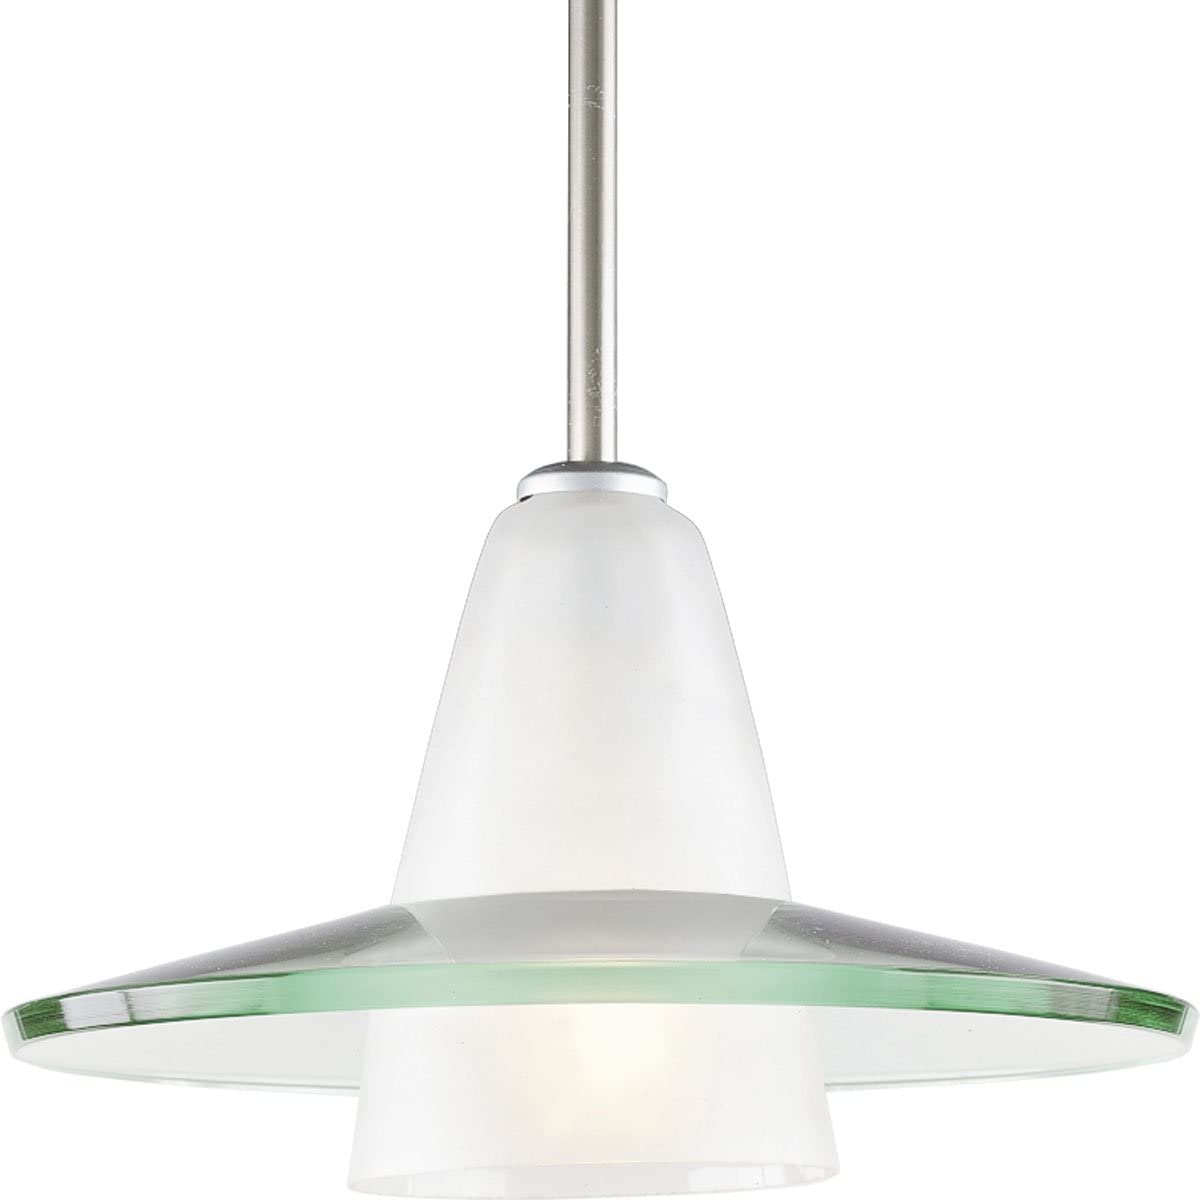 Progress Lighting P5011-09 Pendants, 12-Inch Diameter x 7-5 8-Inch Height, Nickel